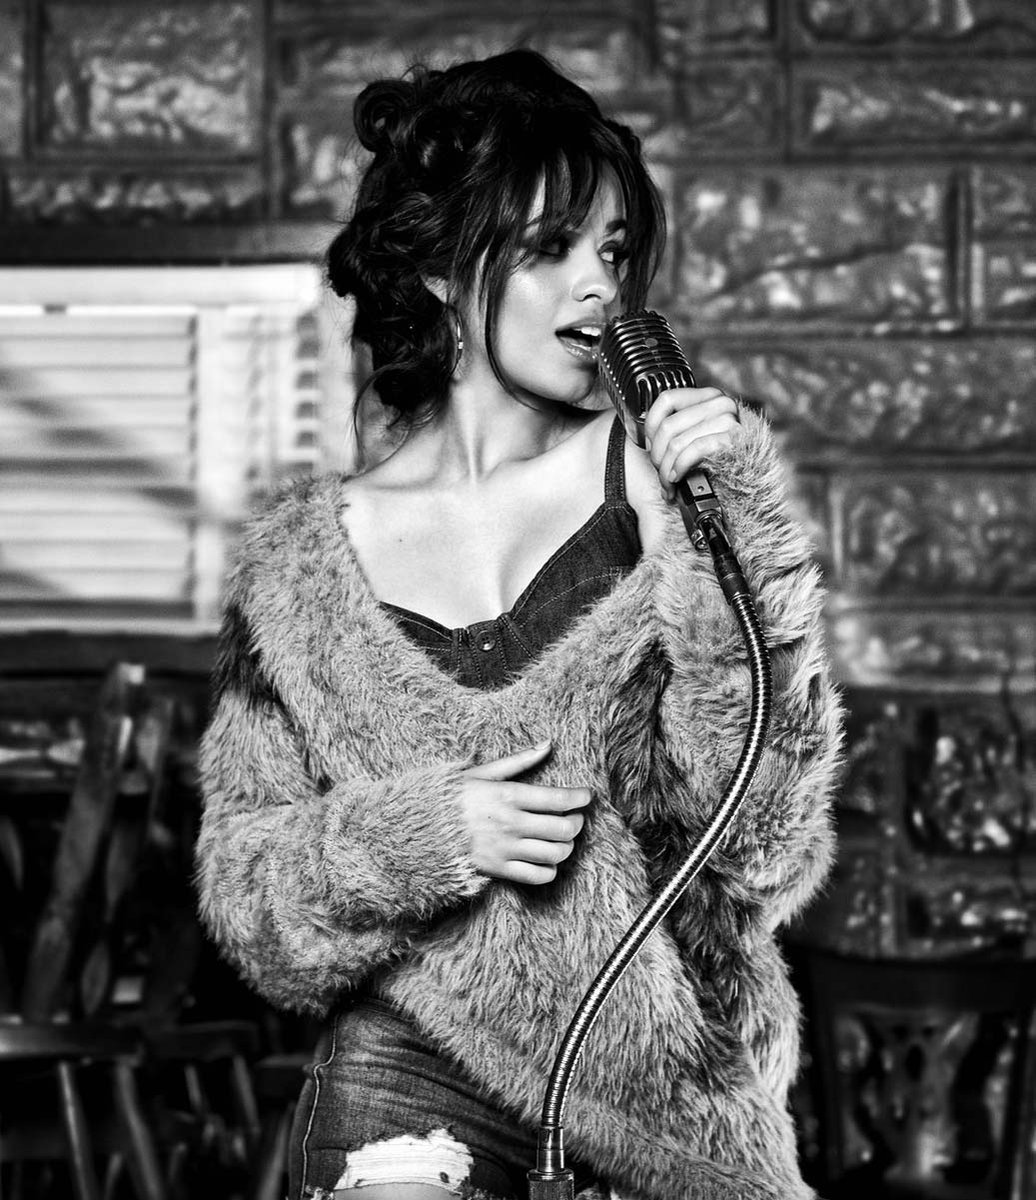 camila cabello guess photo 2017 4 - Фотосессия Камилы Кабелло для бренда Guess